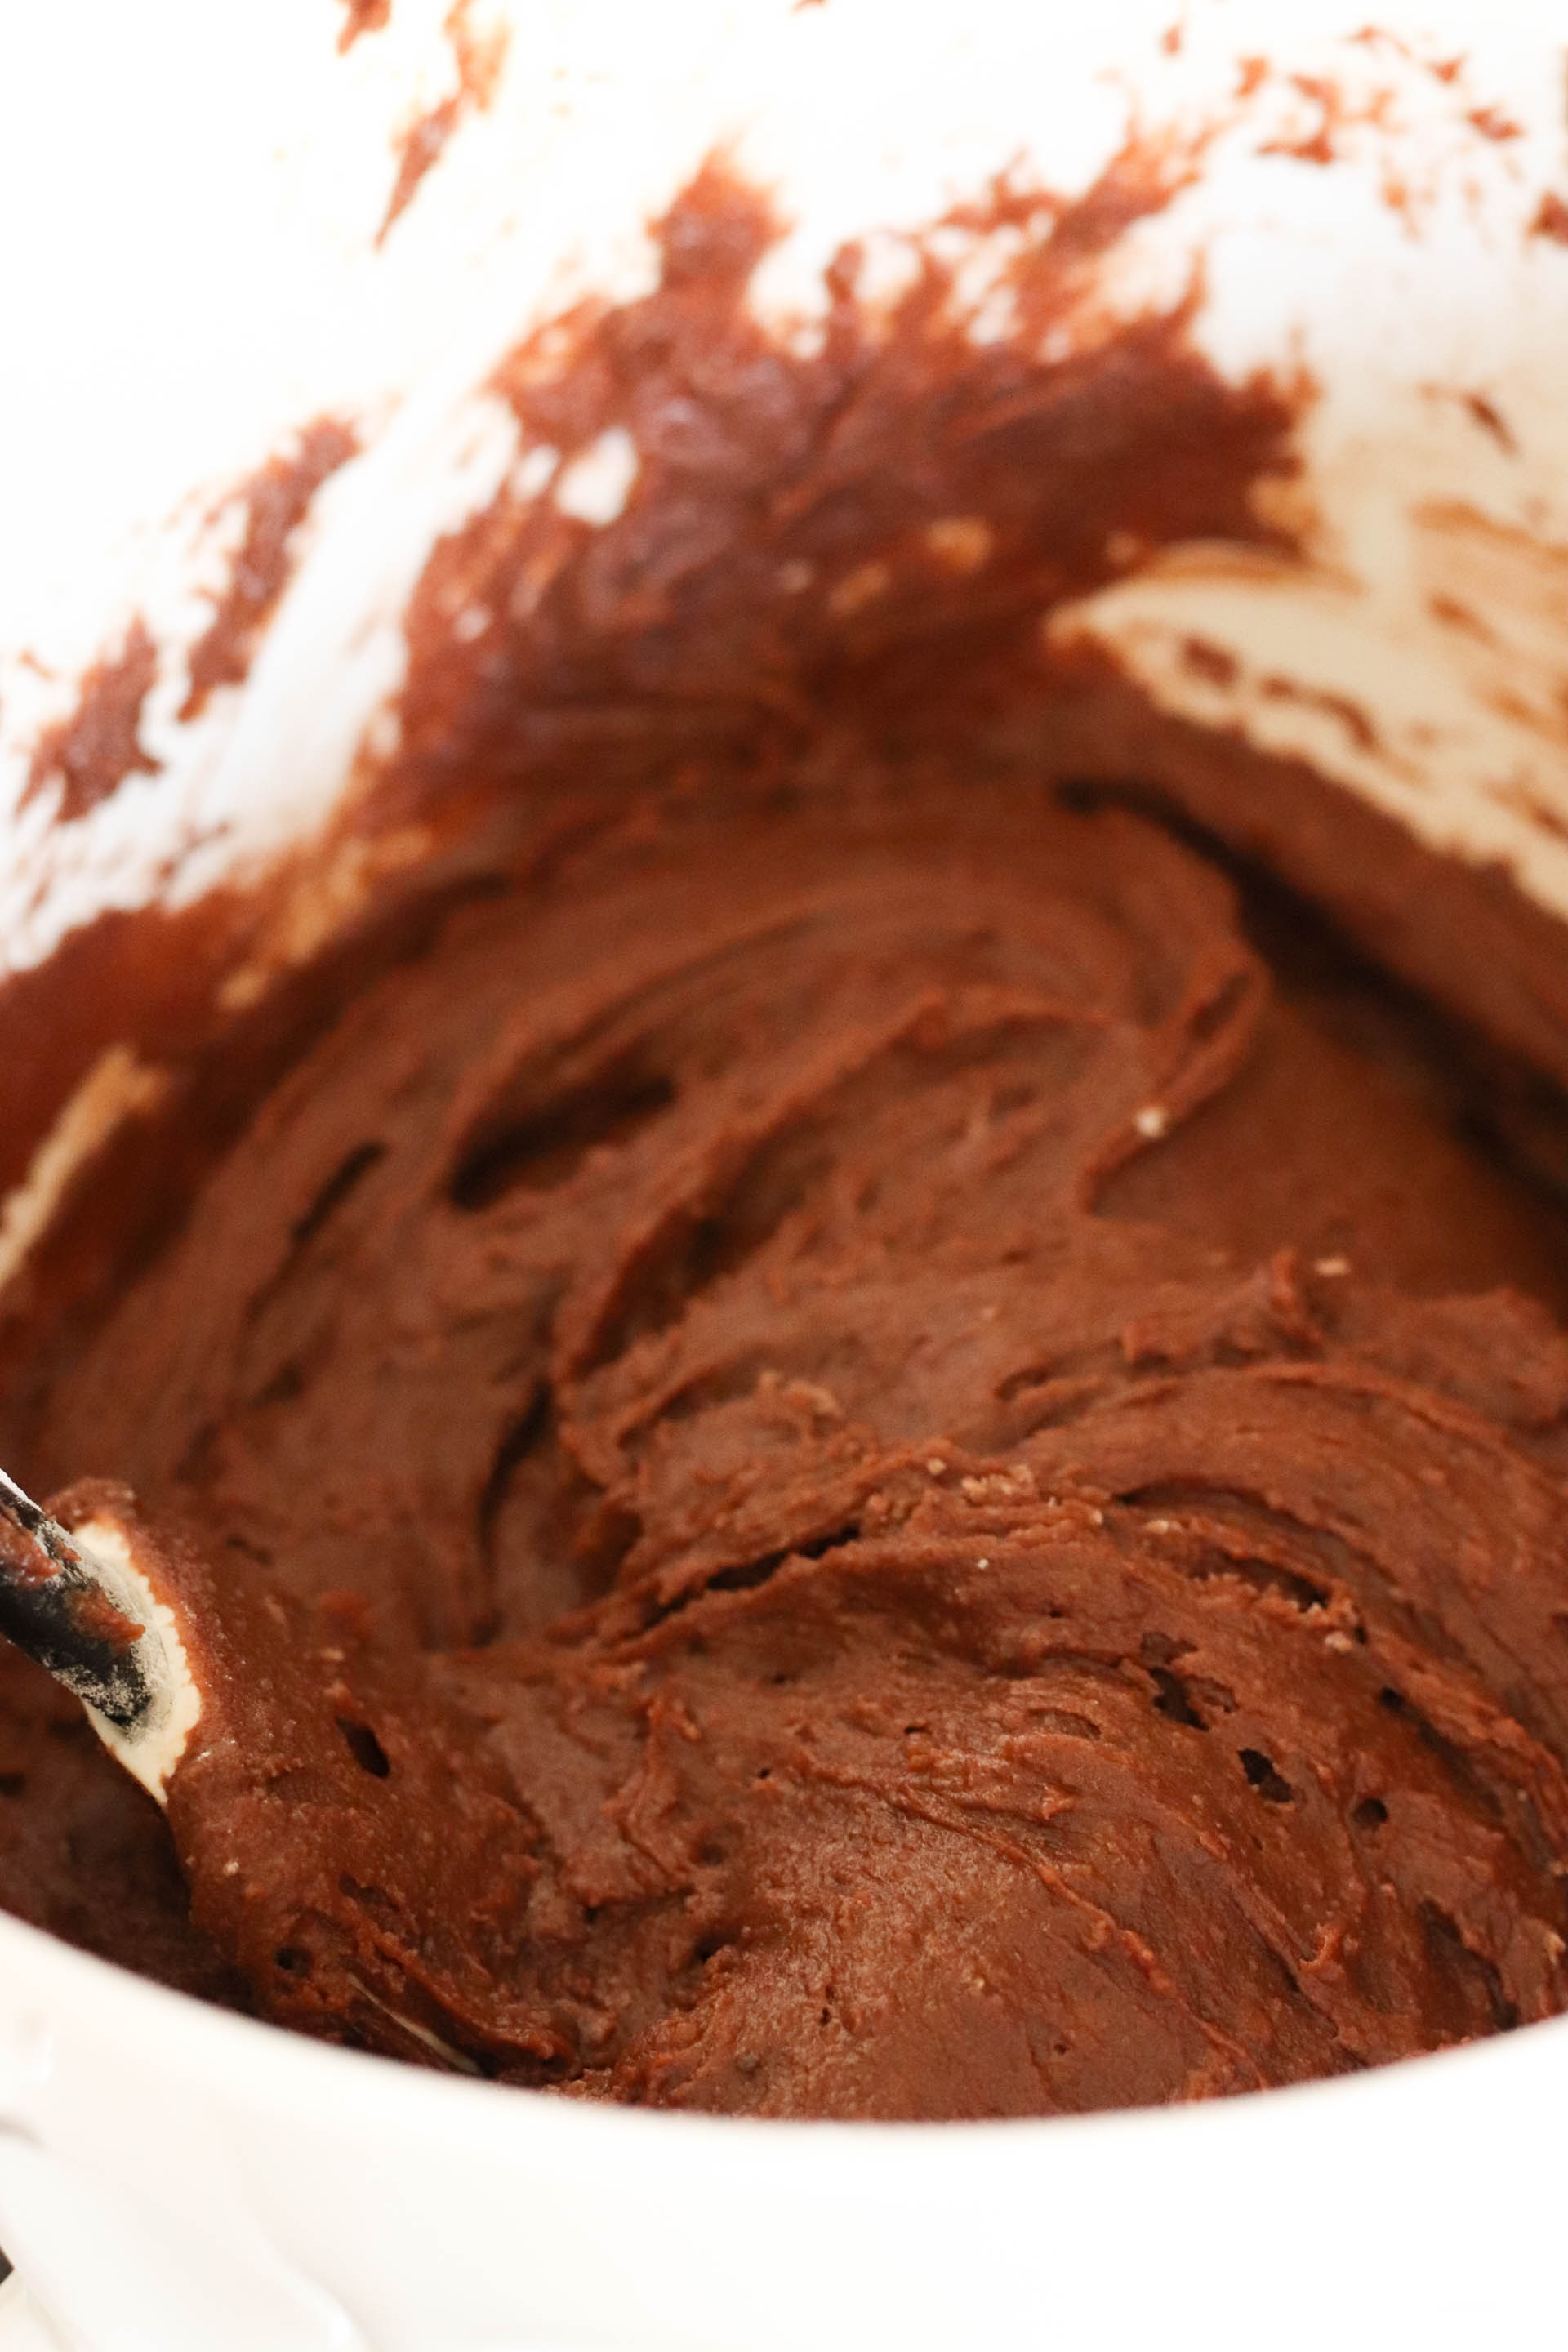 Brownie mixture in mixing bowl with a rubber spatula